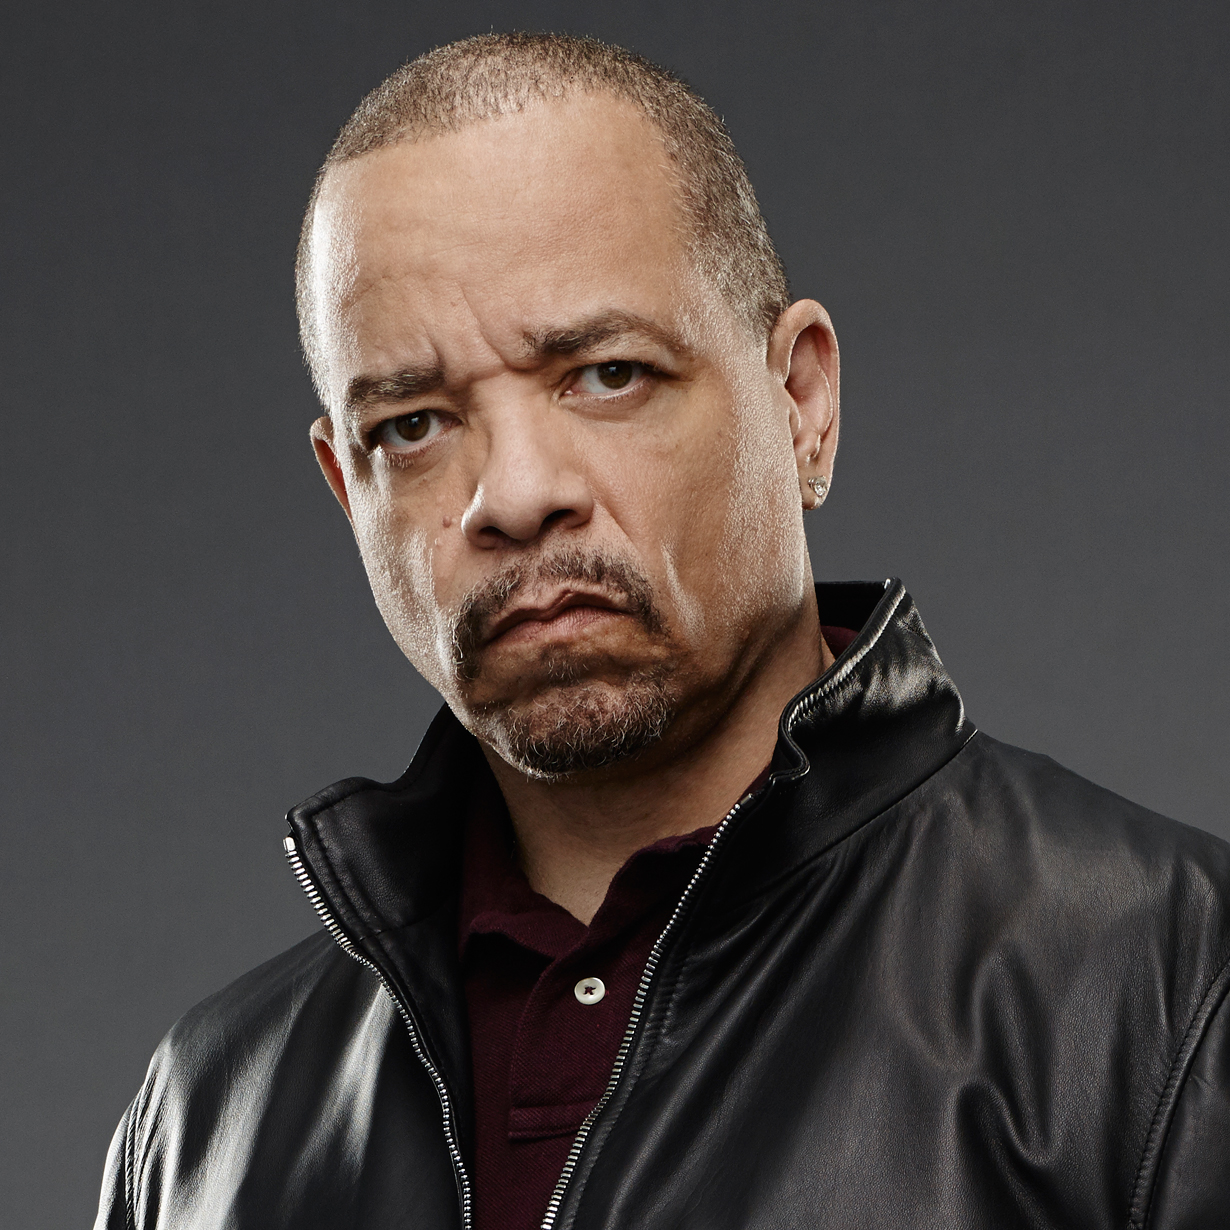 Image result for ice t the actor p i ssed off pictures